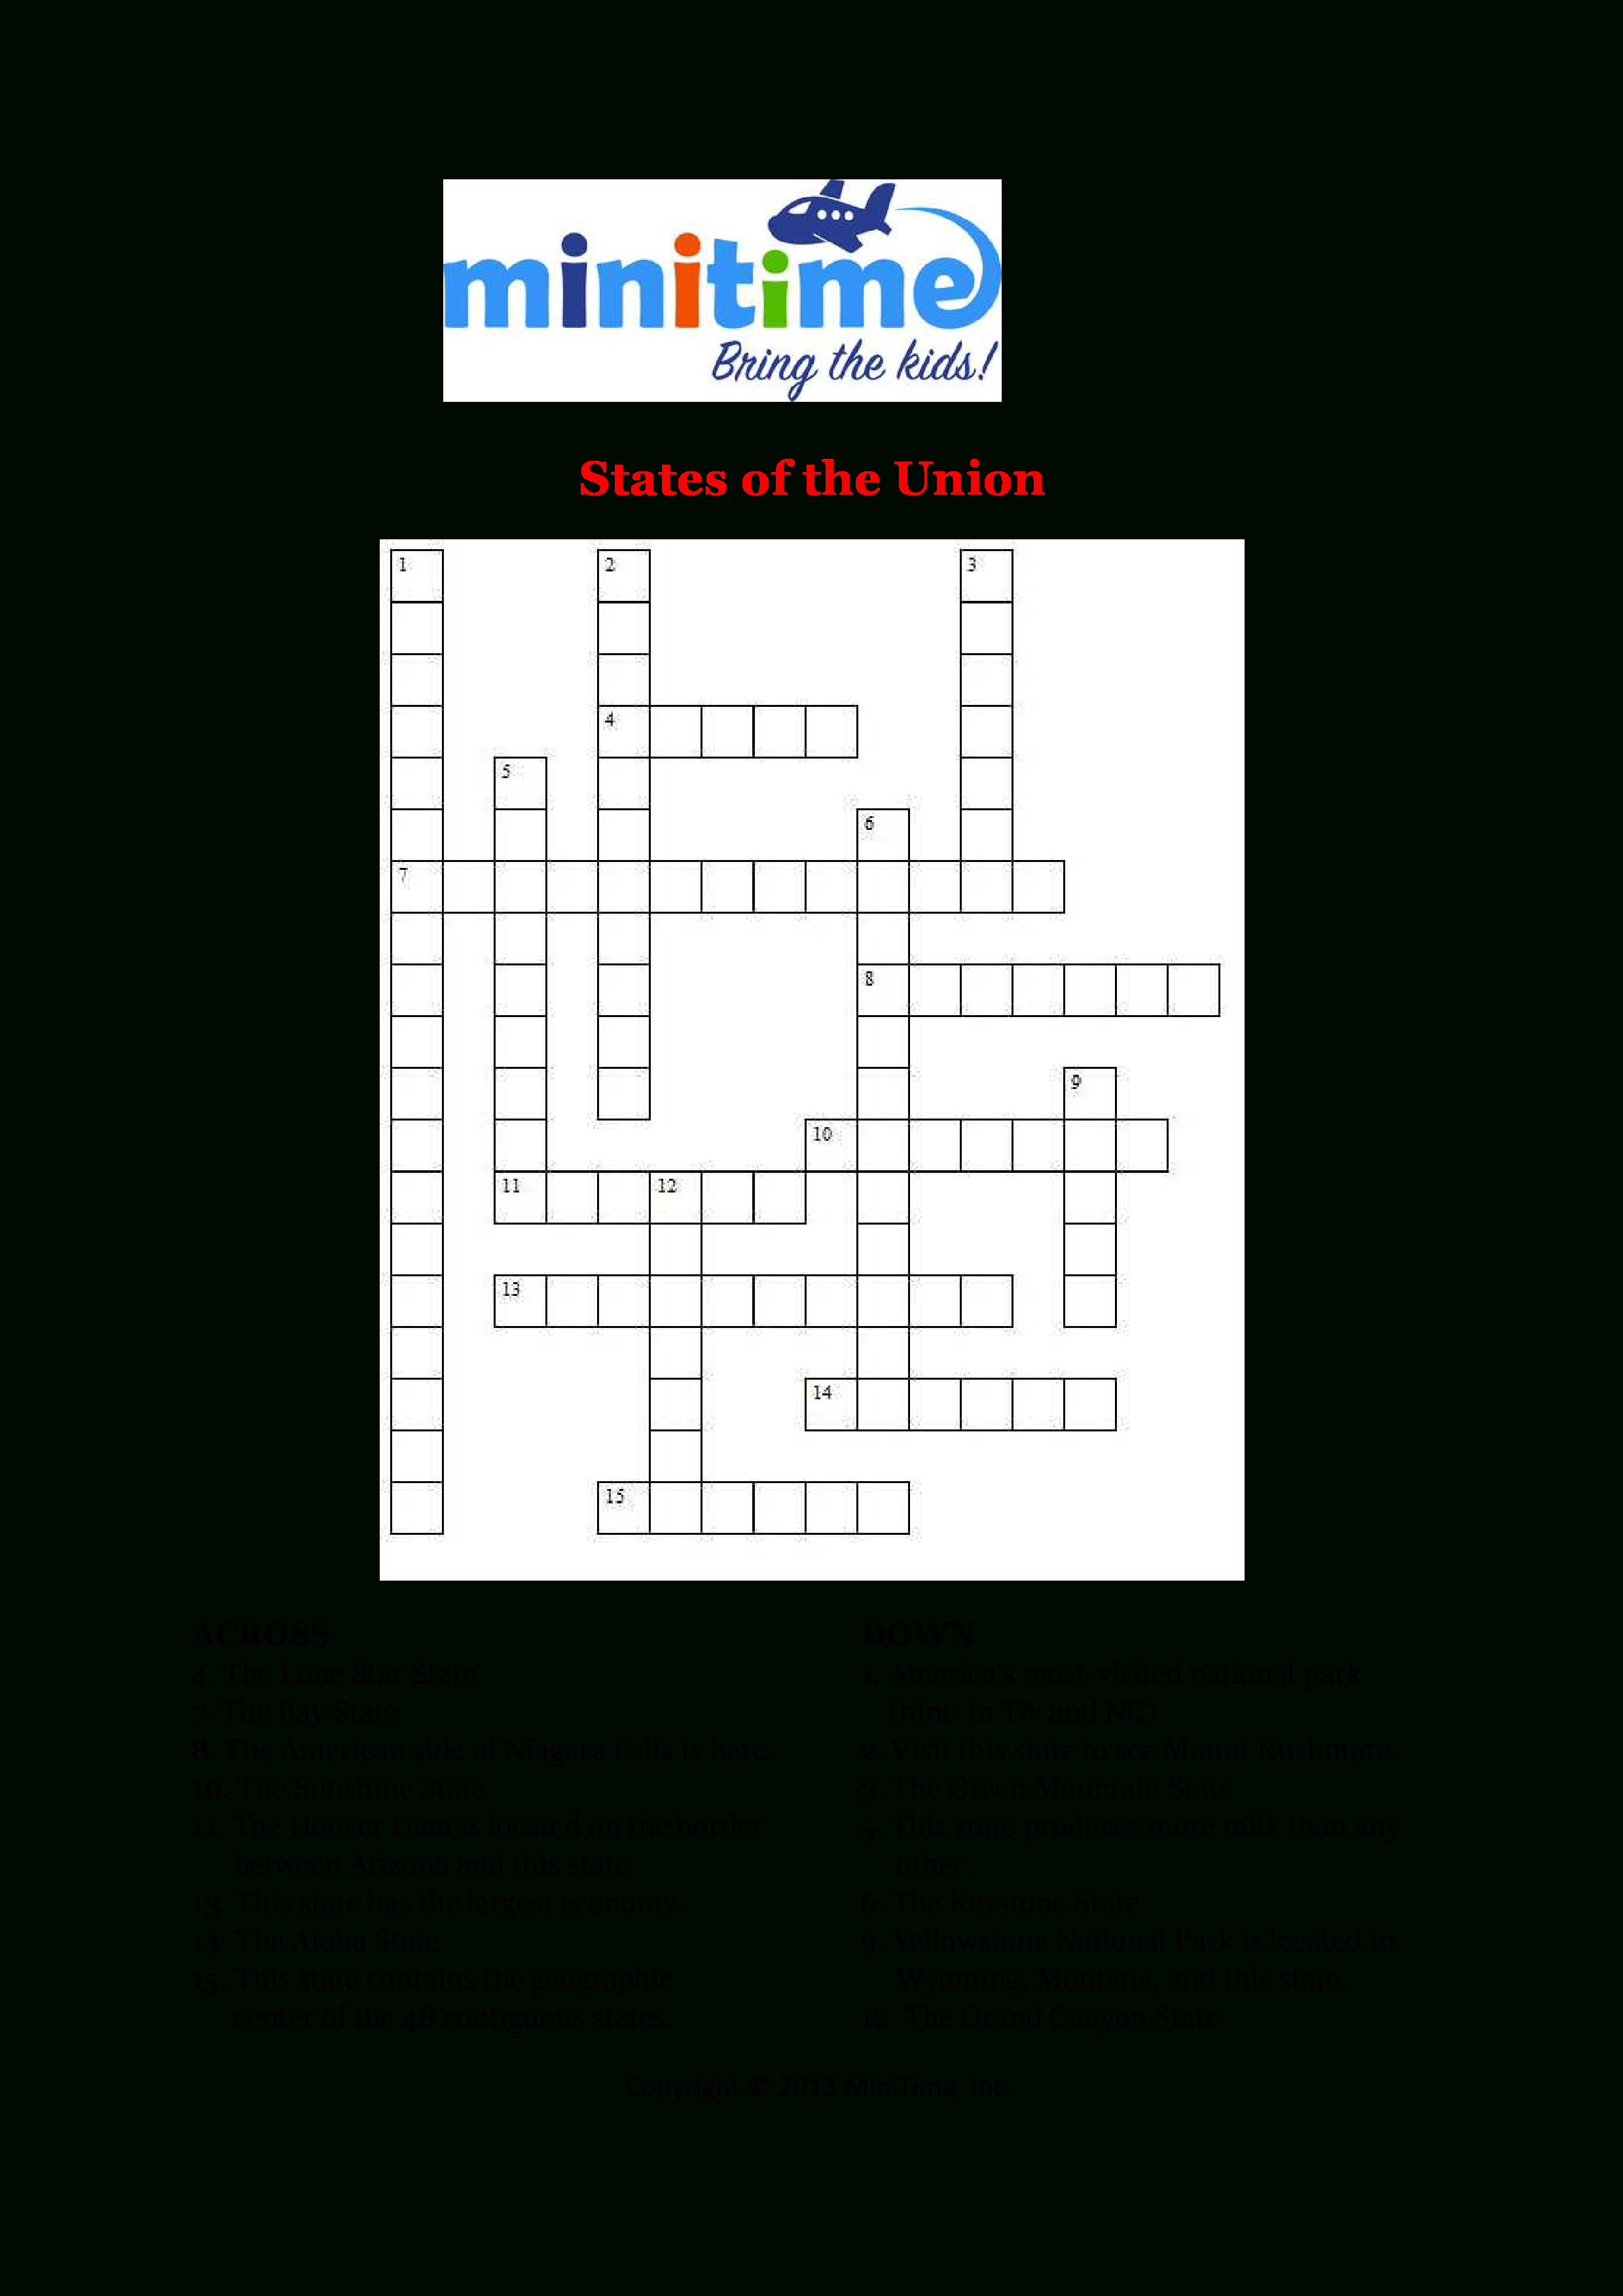 Us States Fun Facts Crossword Puzzles | Free Printable Travel - 50 States Crossword Puzzle Printable